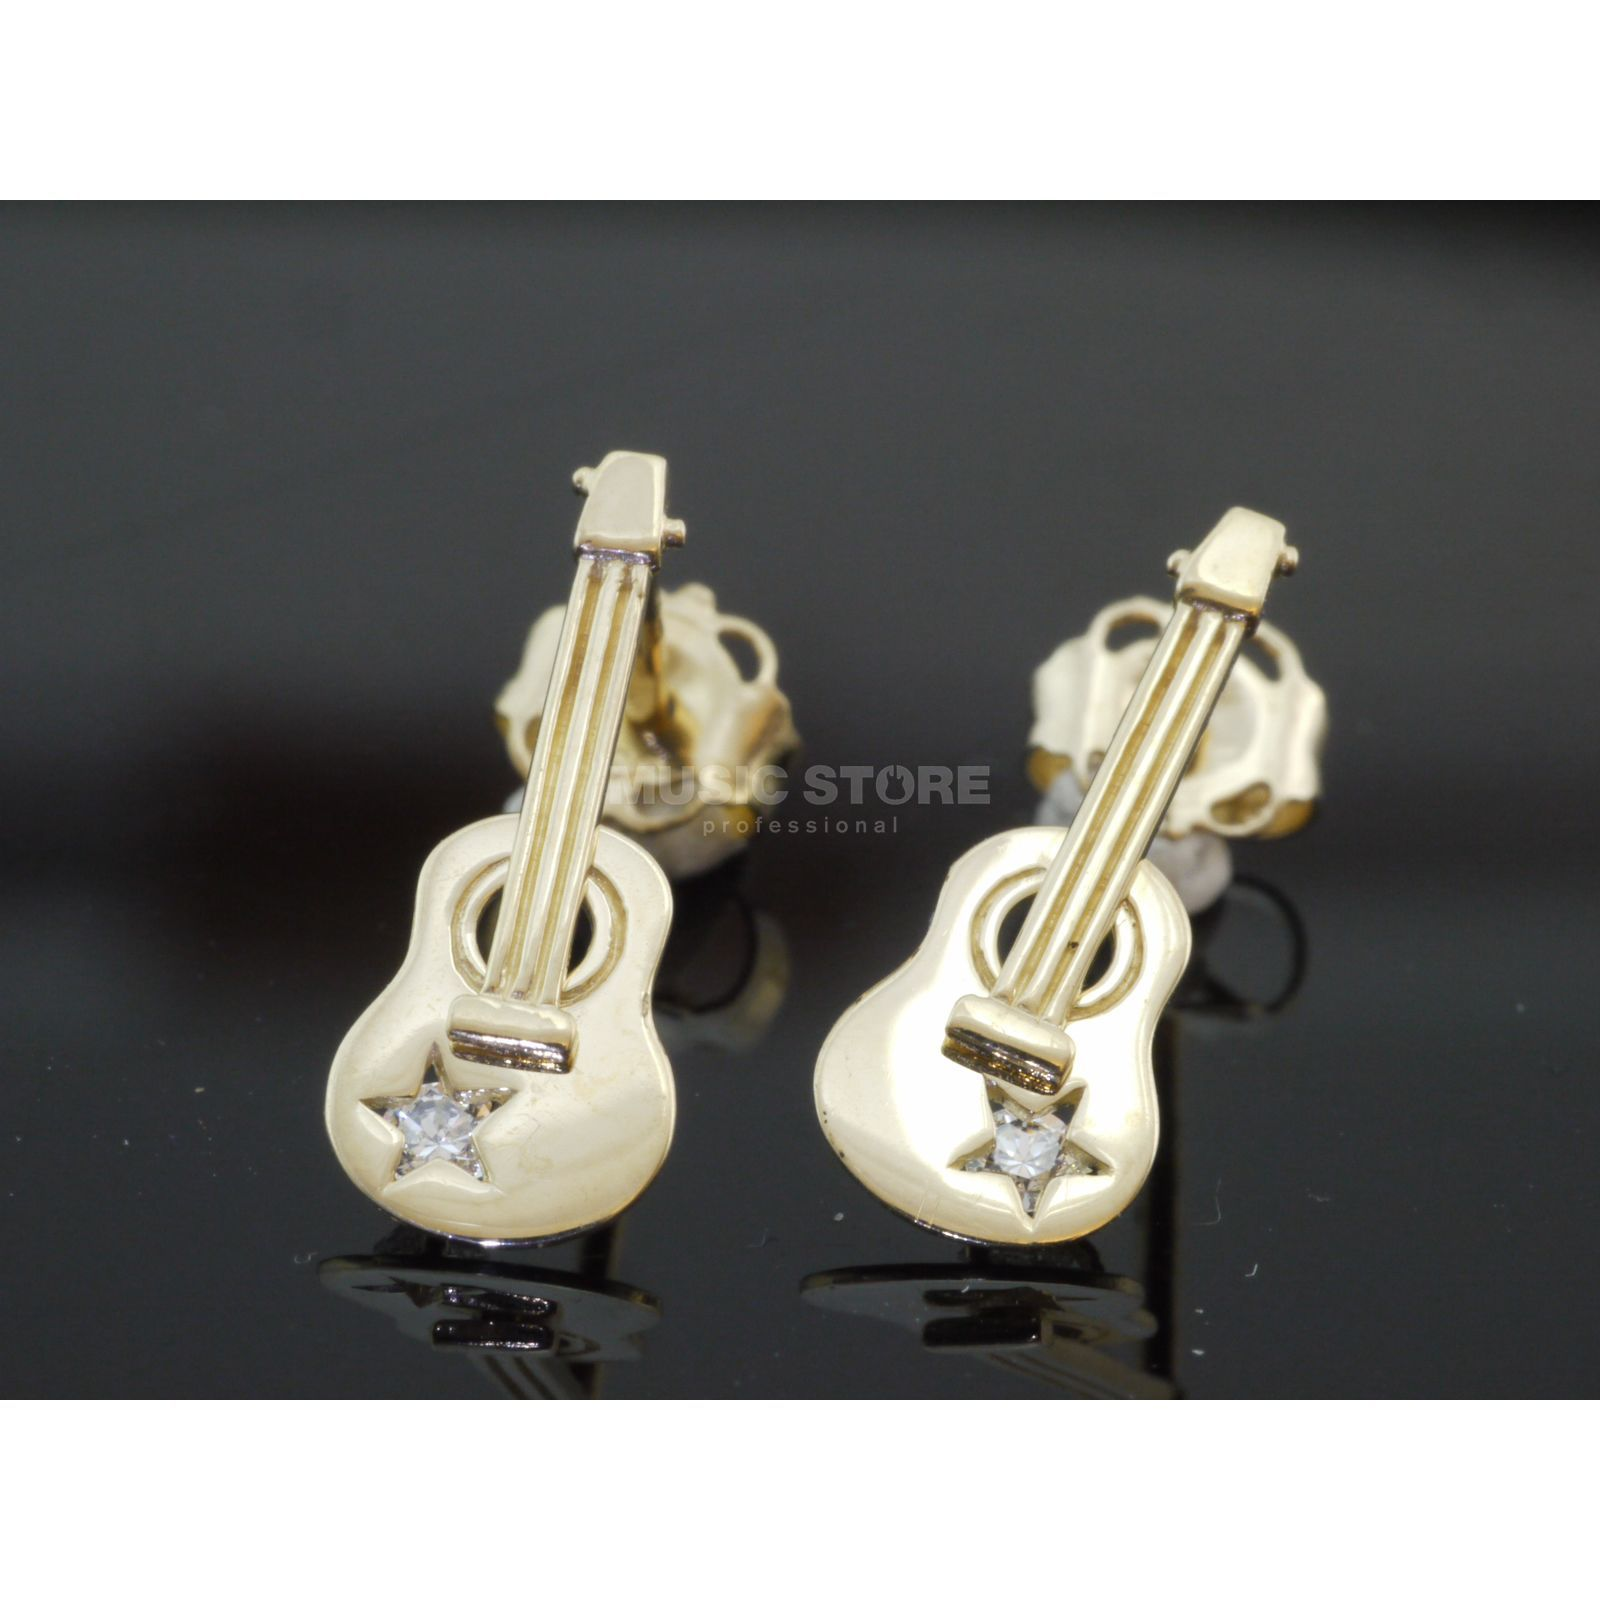 Rockys Earrings Western Guitar Gold 333/8 Karat, zirconia Produktbillede